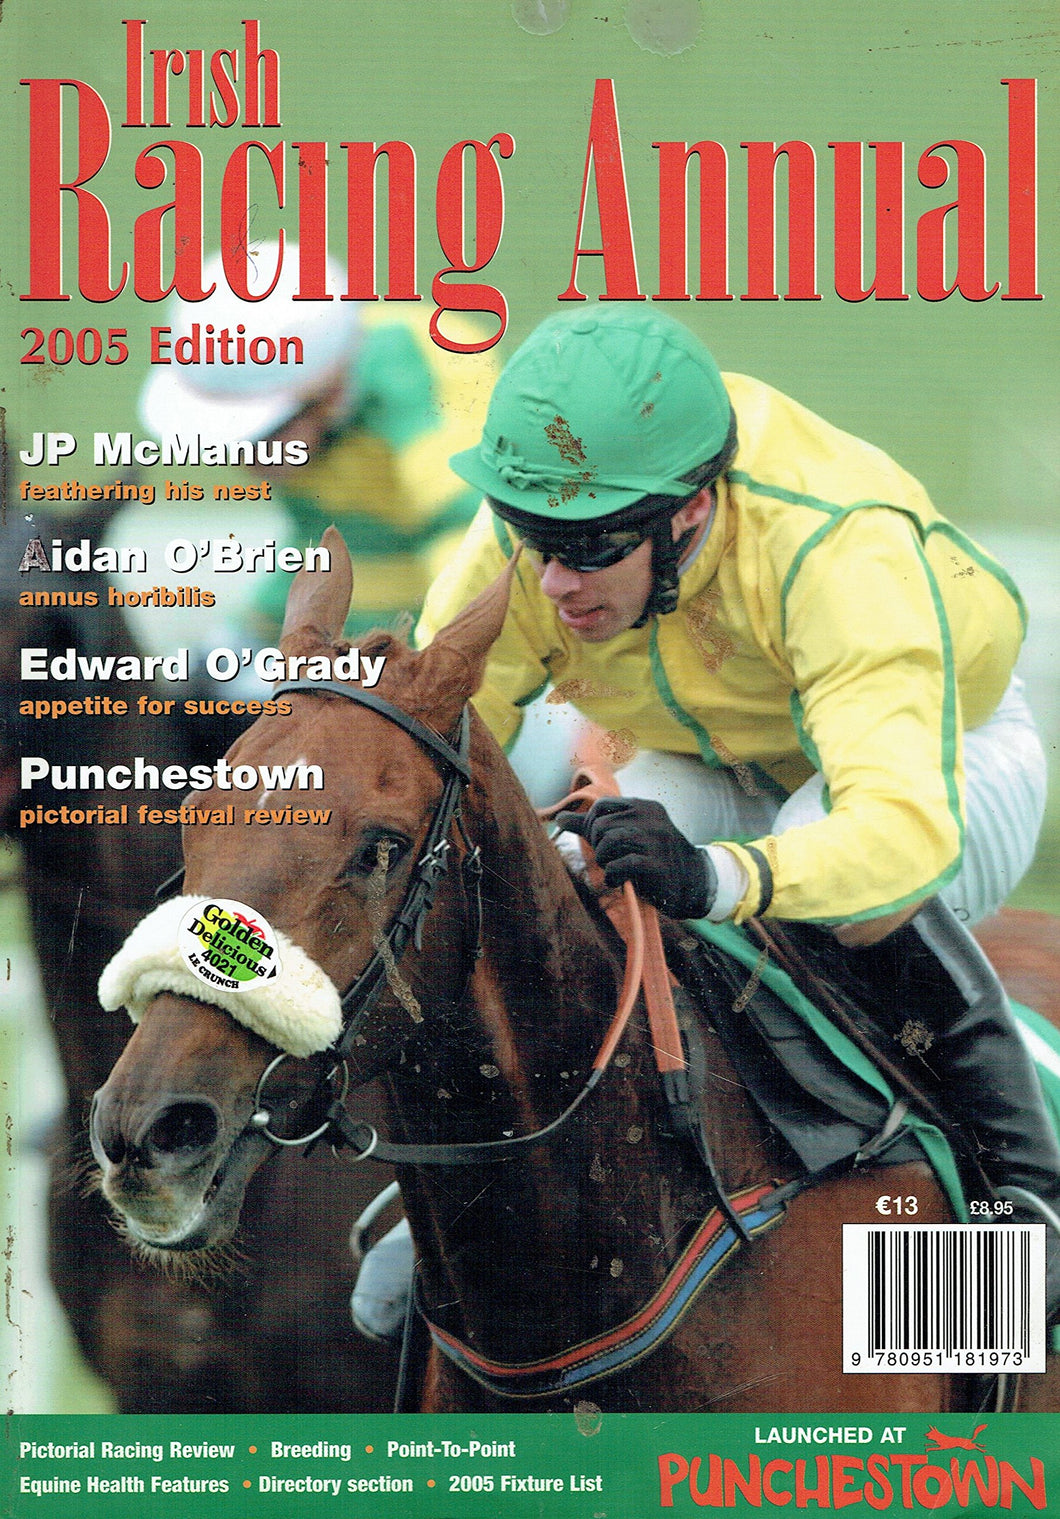 Irish Racing Annual - 2005 Edition